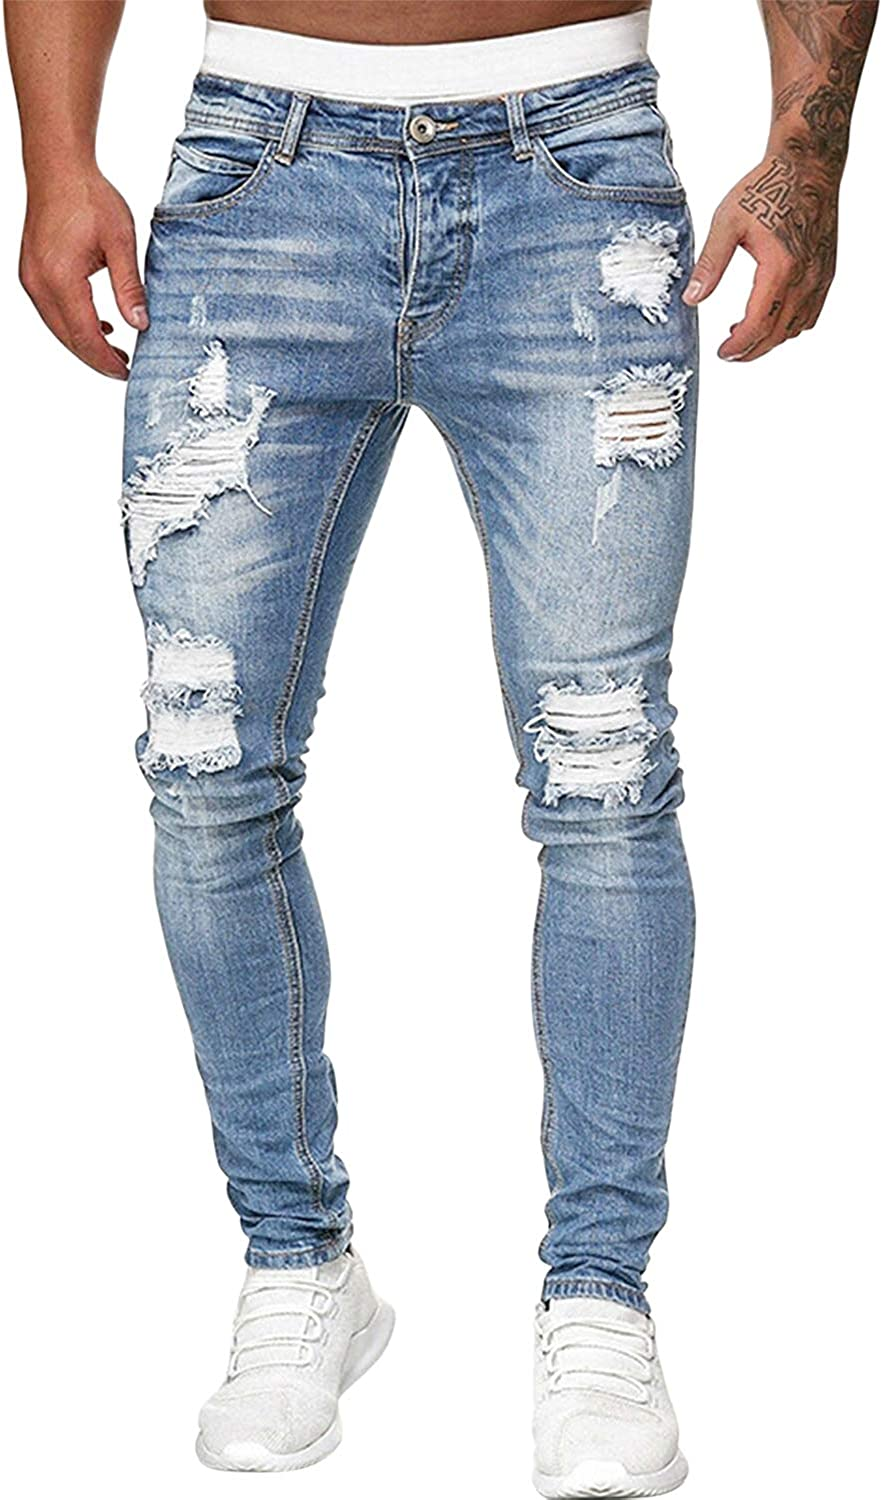 Max 48% OFF Katesid Mens Ripped Holes Stretch Skinny Jeans Rise Slim Fit Mid Max 41% OFF